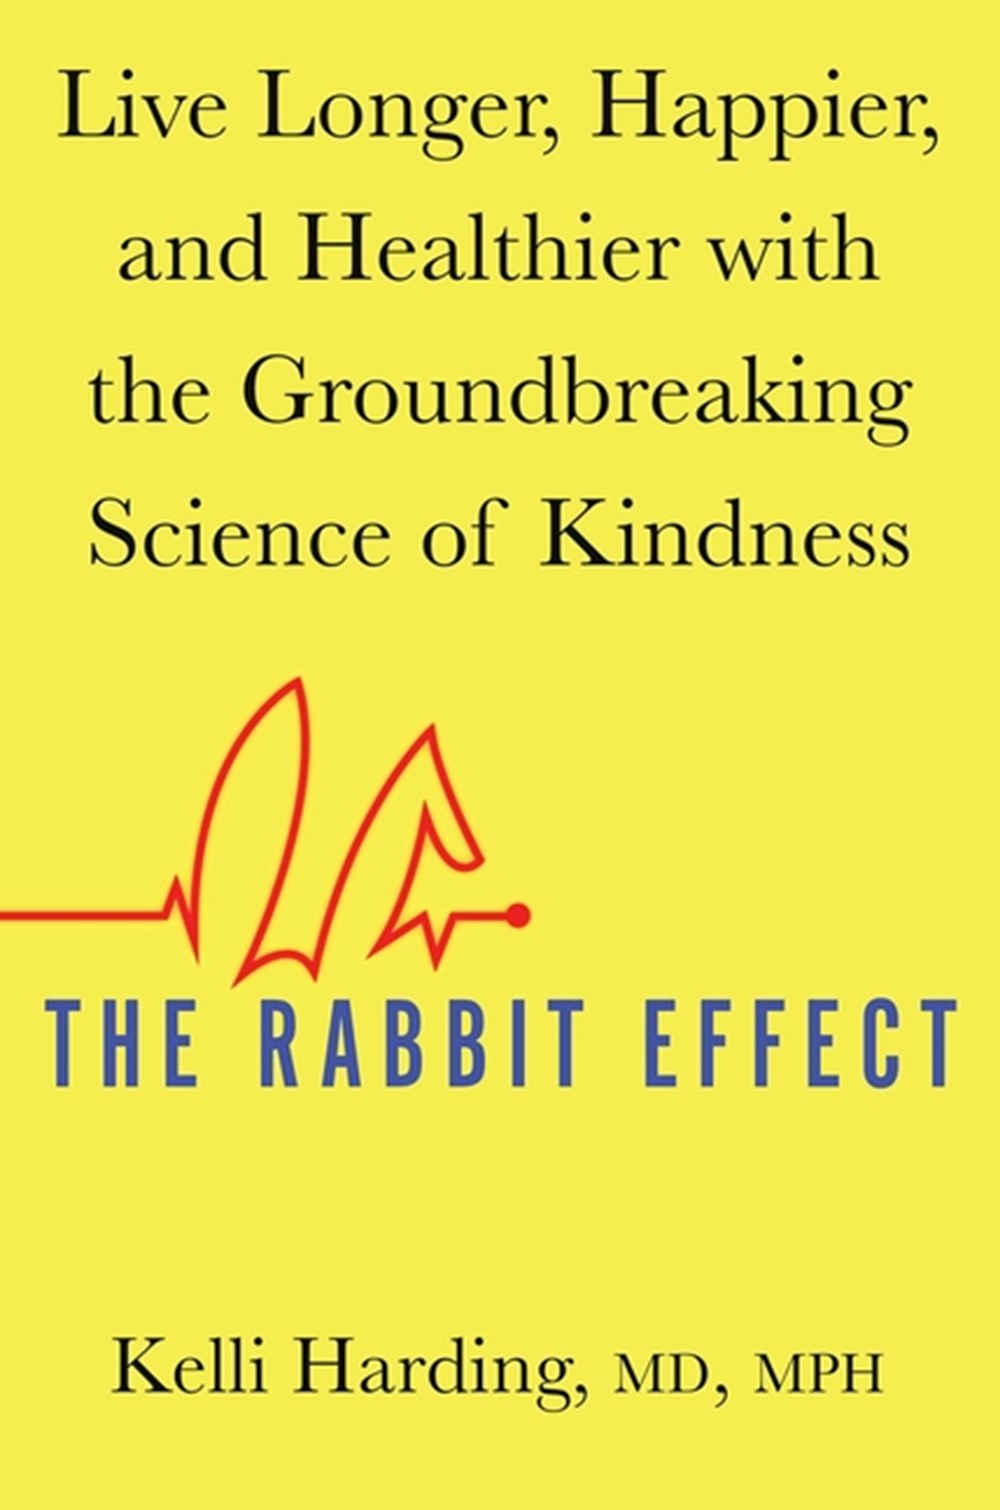 Rabbit Effect: Live Longer, Happier, and Healthier with the Groundbreaking Science of Kindness